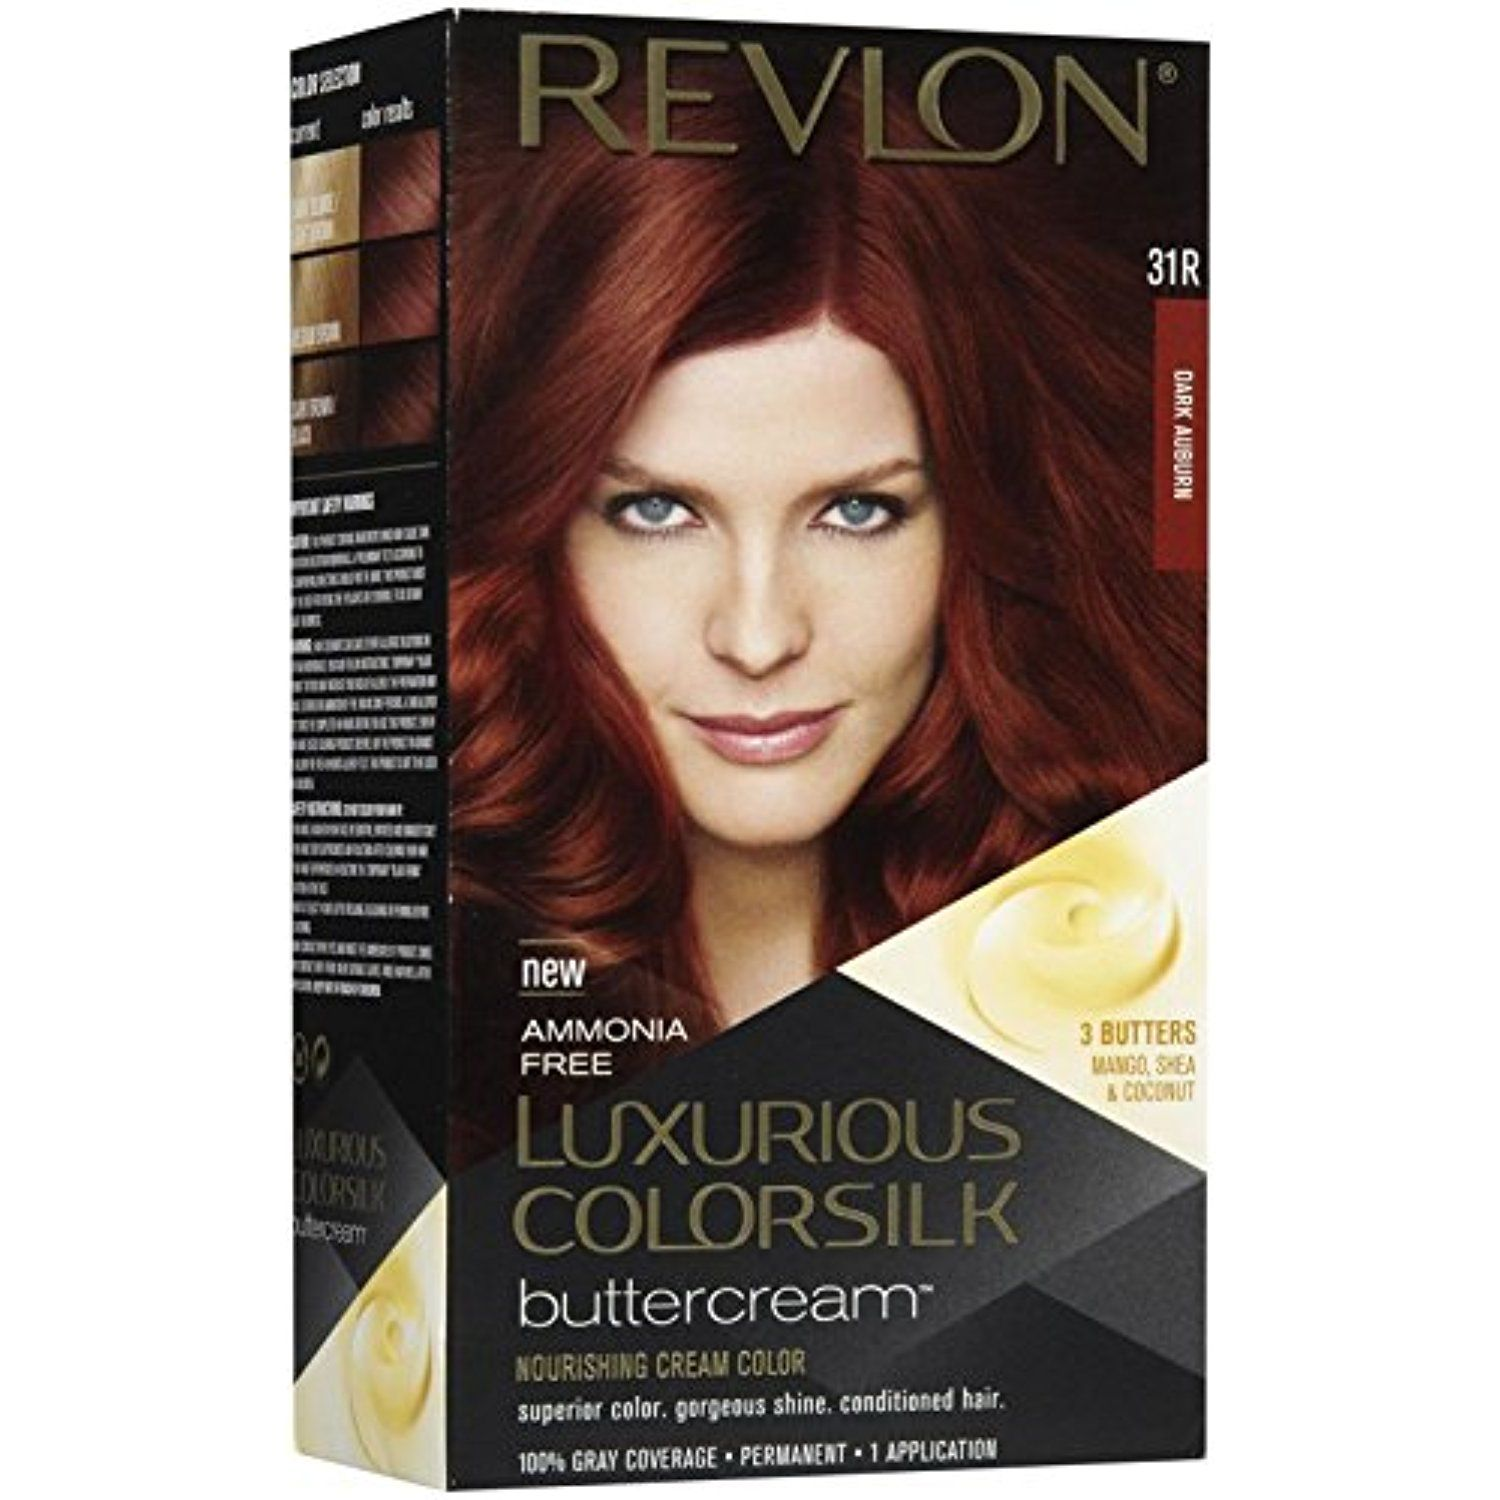 Revlon Colorsilk Luxurious Colorsilk Buttercream Dark Auburn